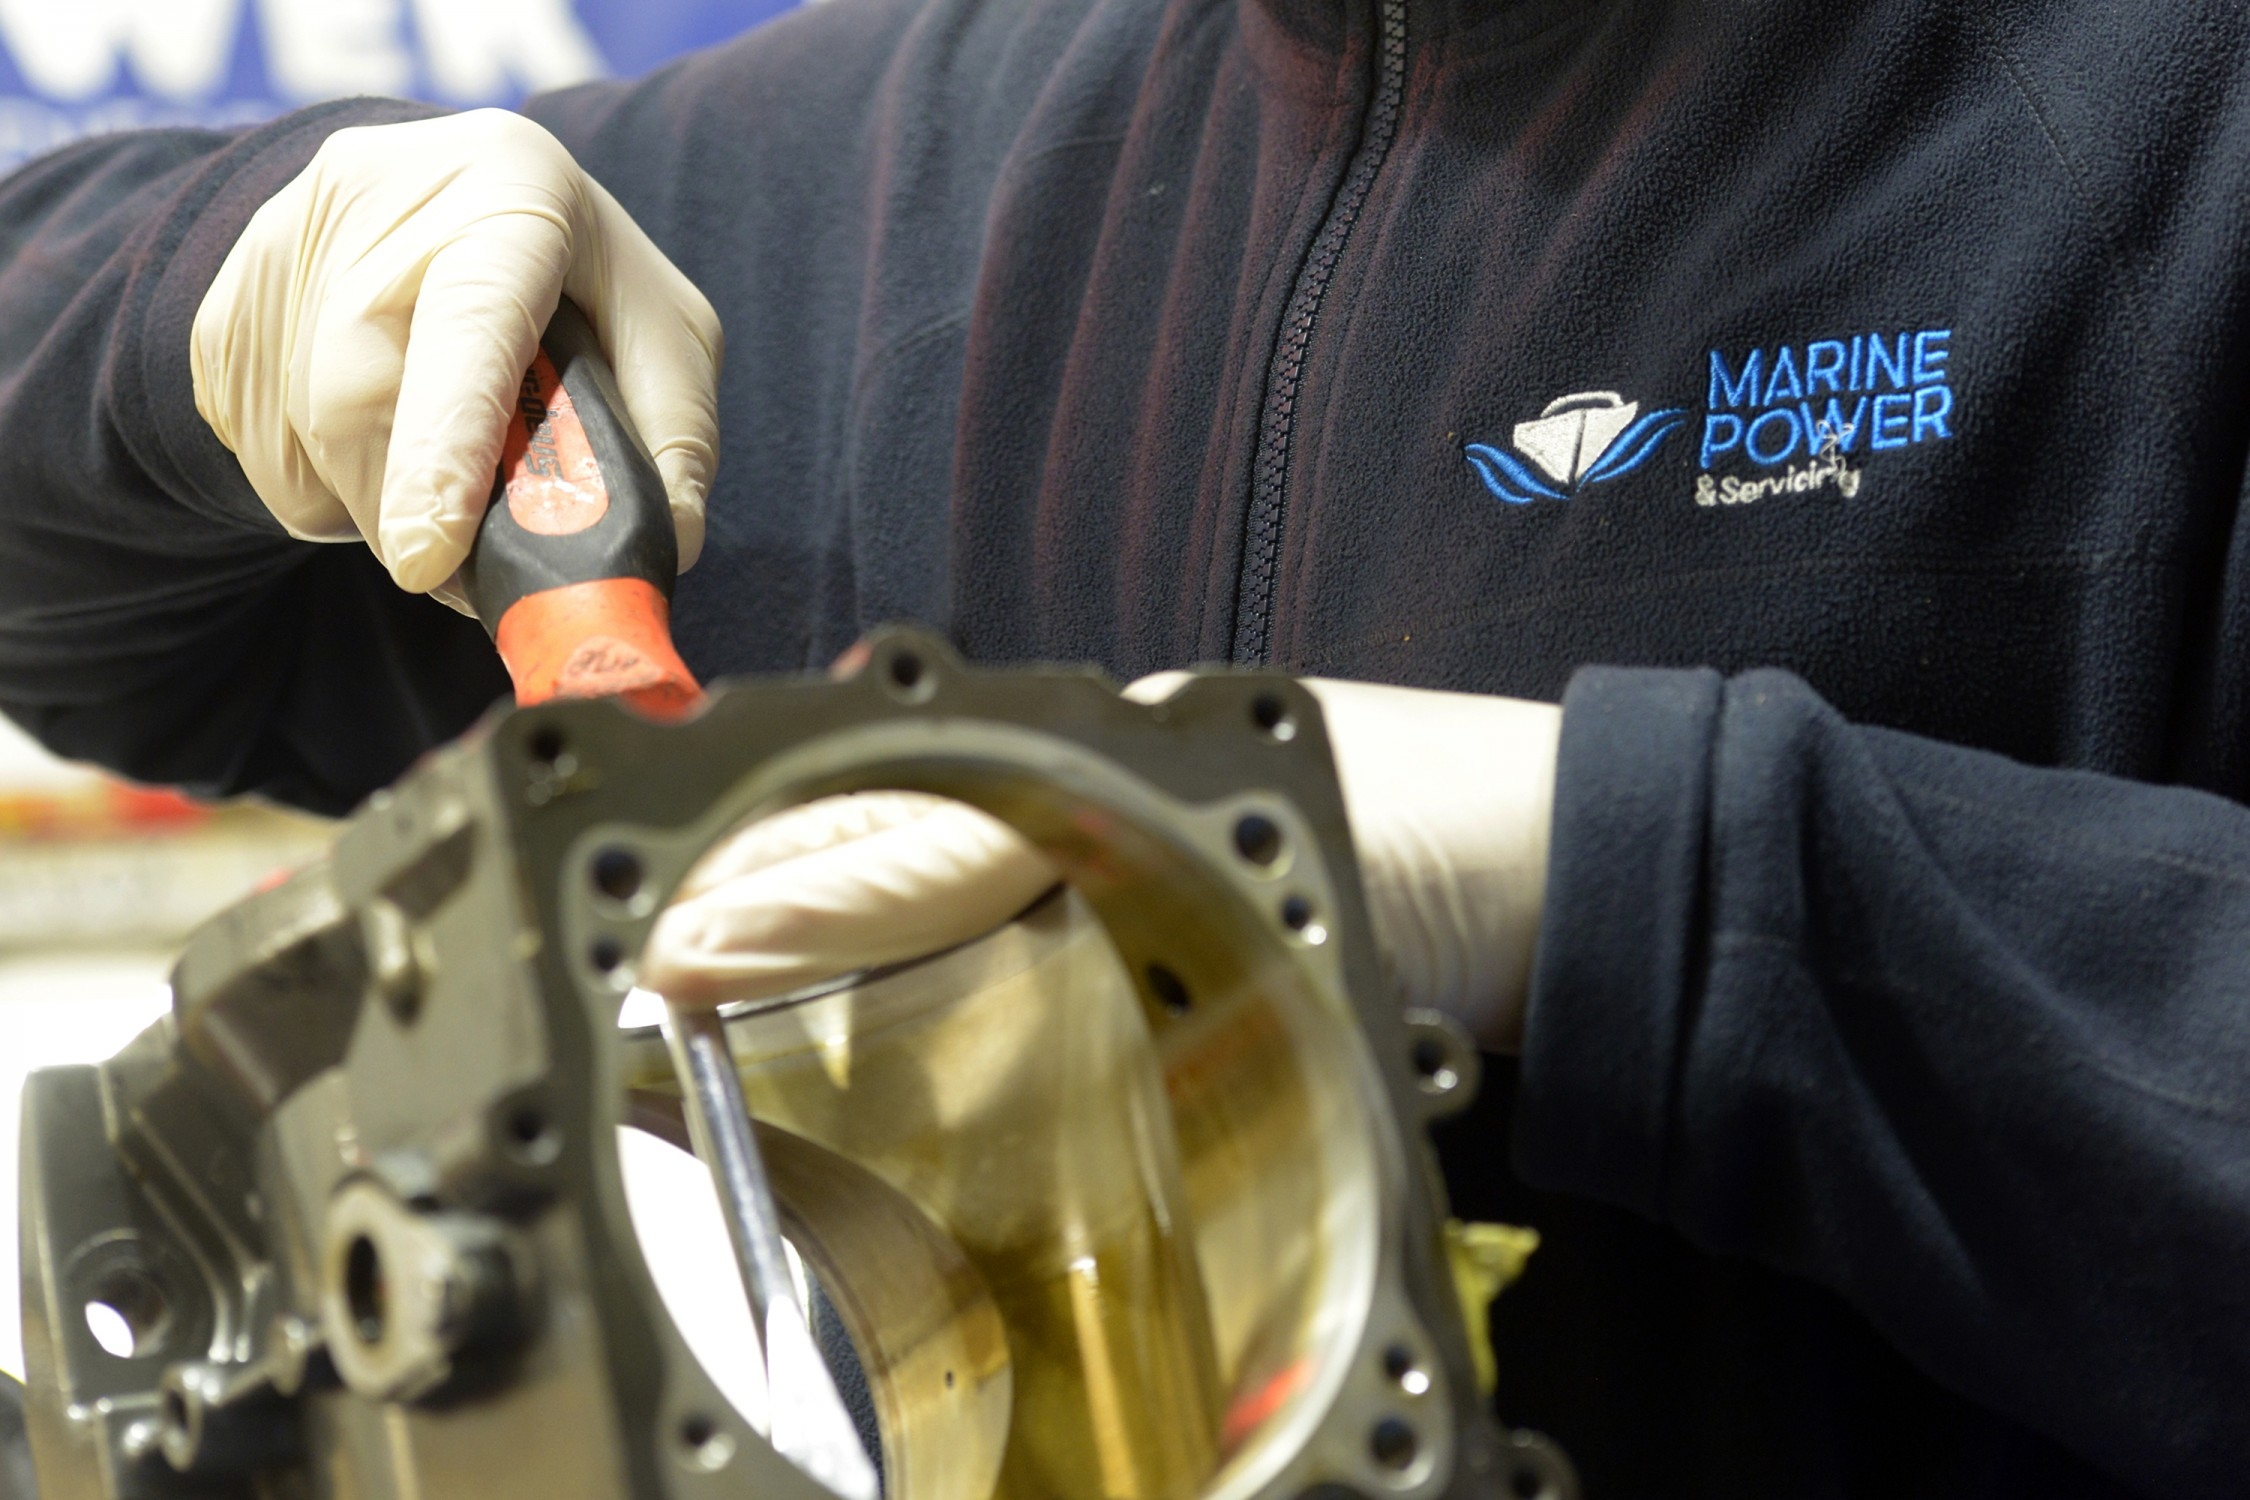 boatfolk Customers get 10% Discount on all Labour Charges and seasonal discounts on parts too